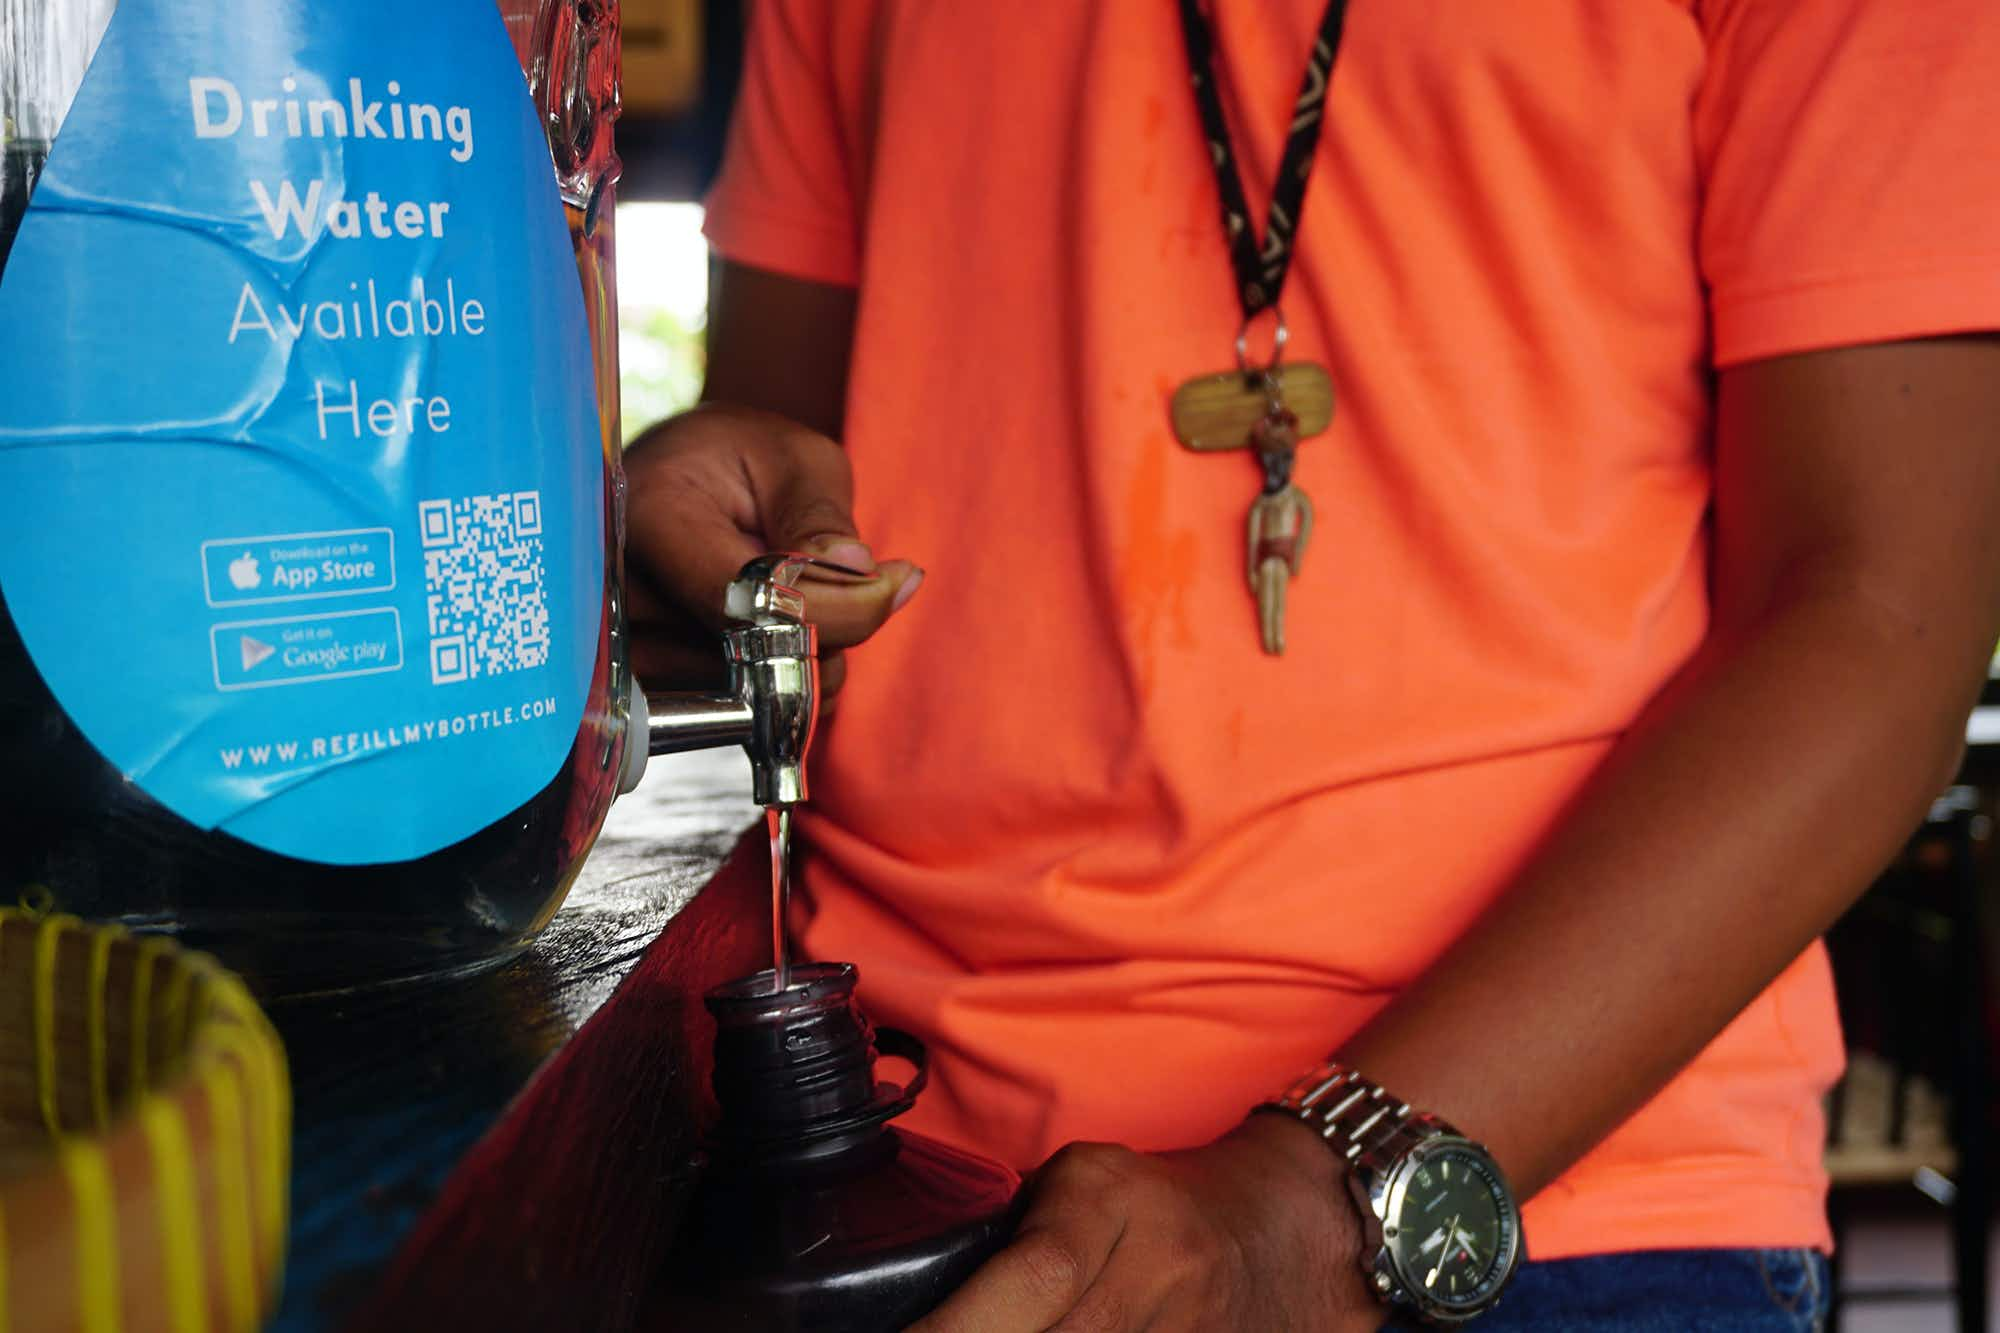 Drink more water while saving the environment in Southeast Asia